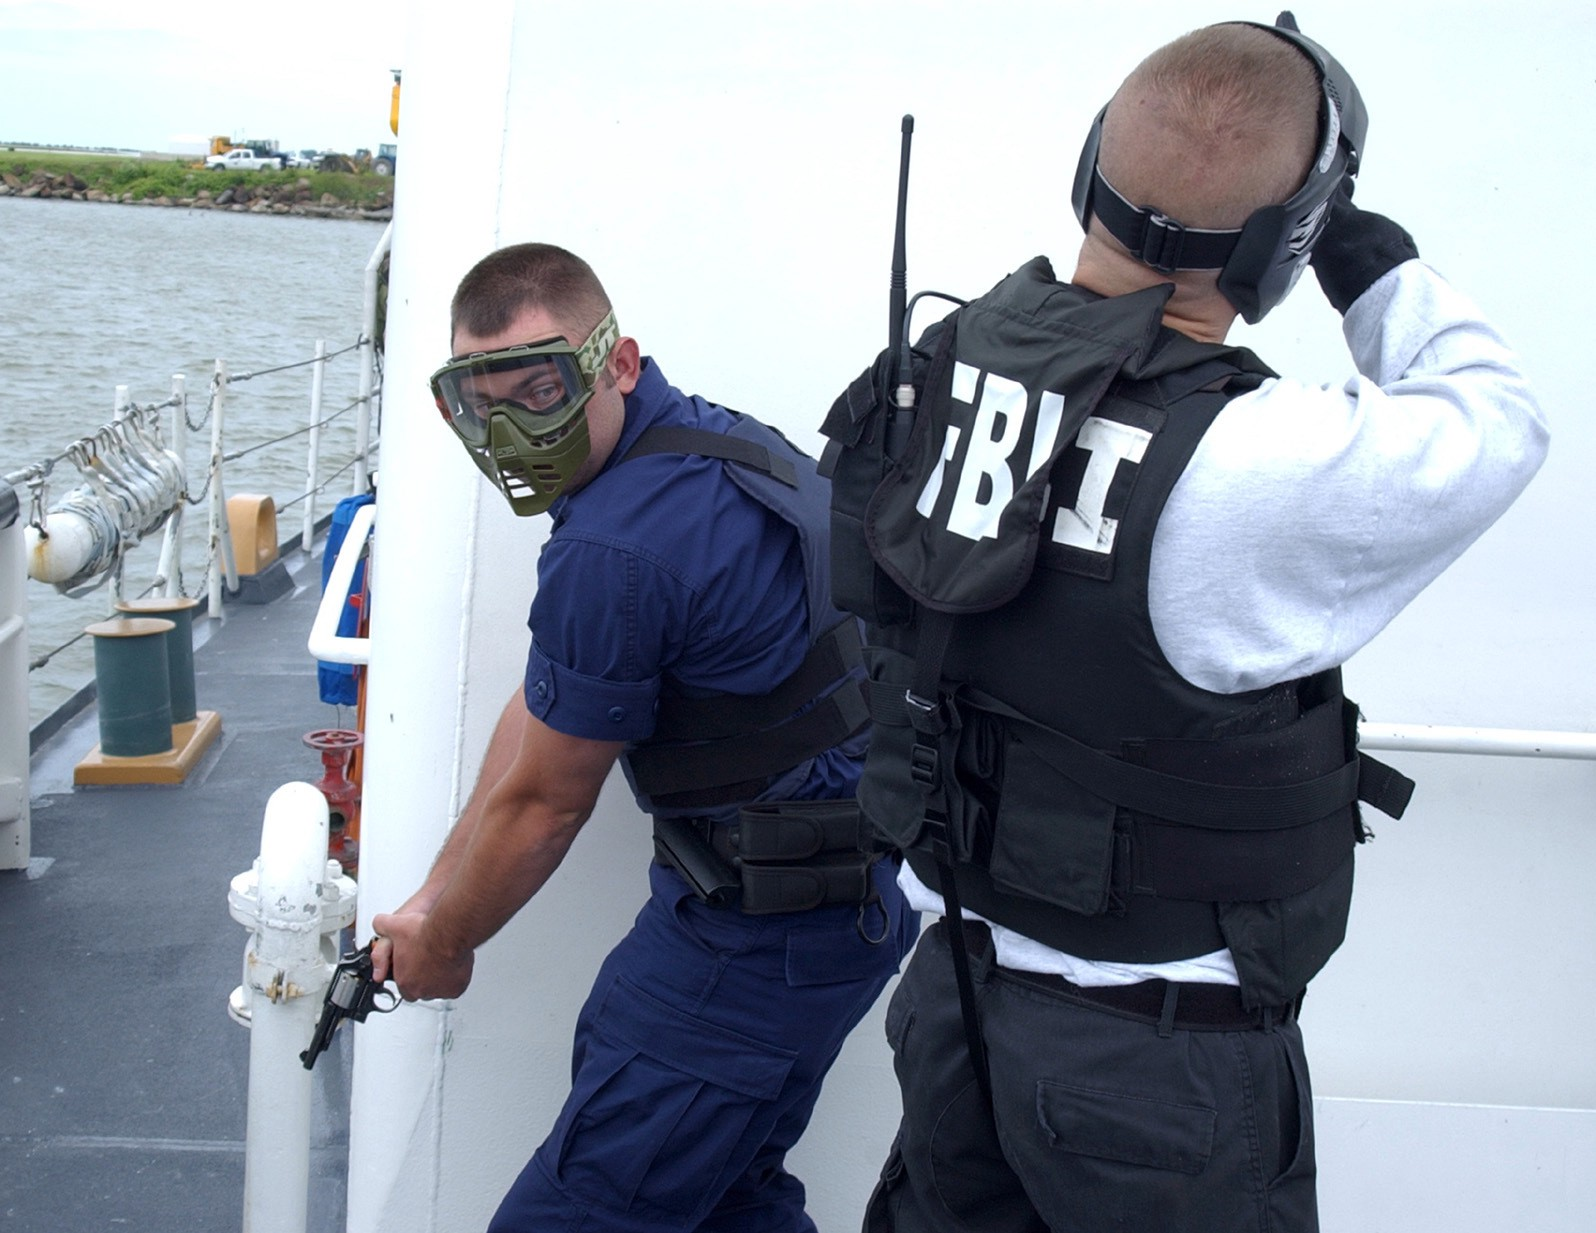 CLEVELAND, Ohio (June 4, 2004) - Petty Officer 2nd Class John Peters, Coast Guard Station Lorain, Ohio, searches for terrorists aboard the Coast Guard Cutter Neah Bay during anti-terrorism training with the FBI. USCG photo by PA1 CHarles C. Reinhart